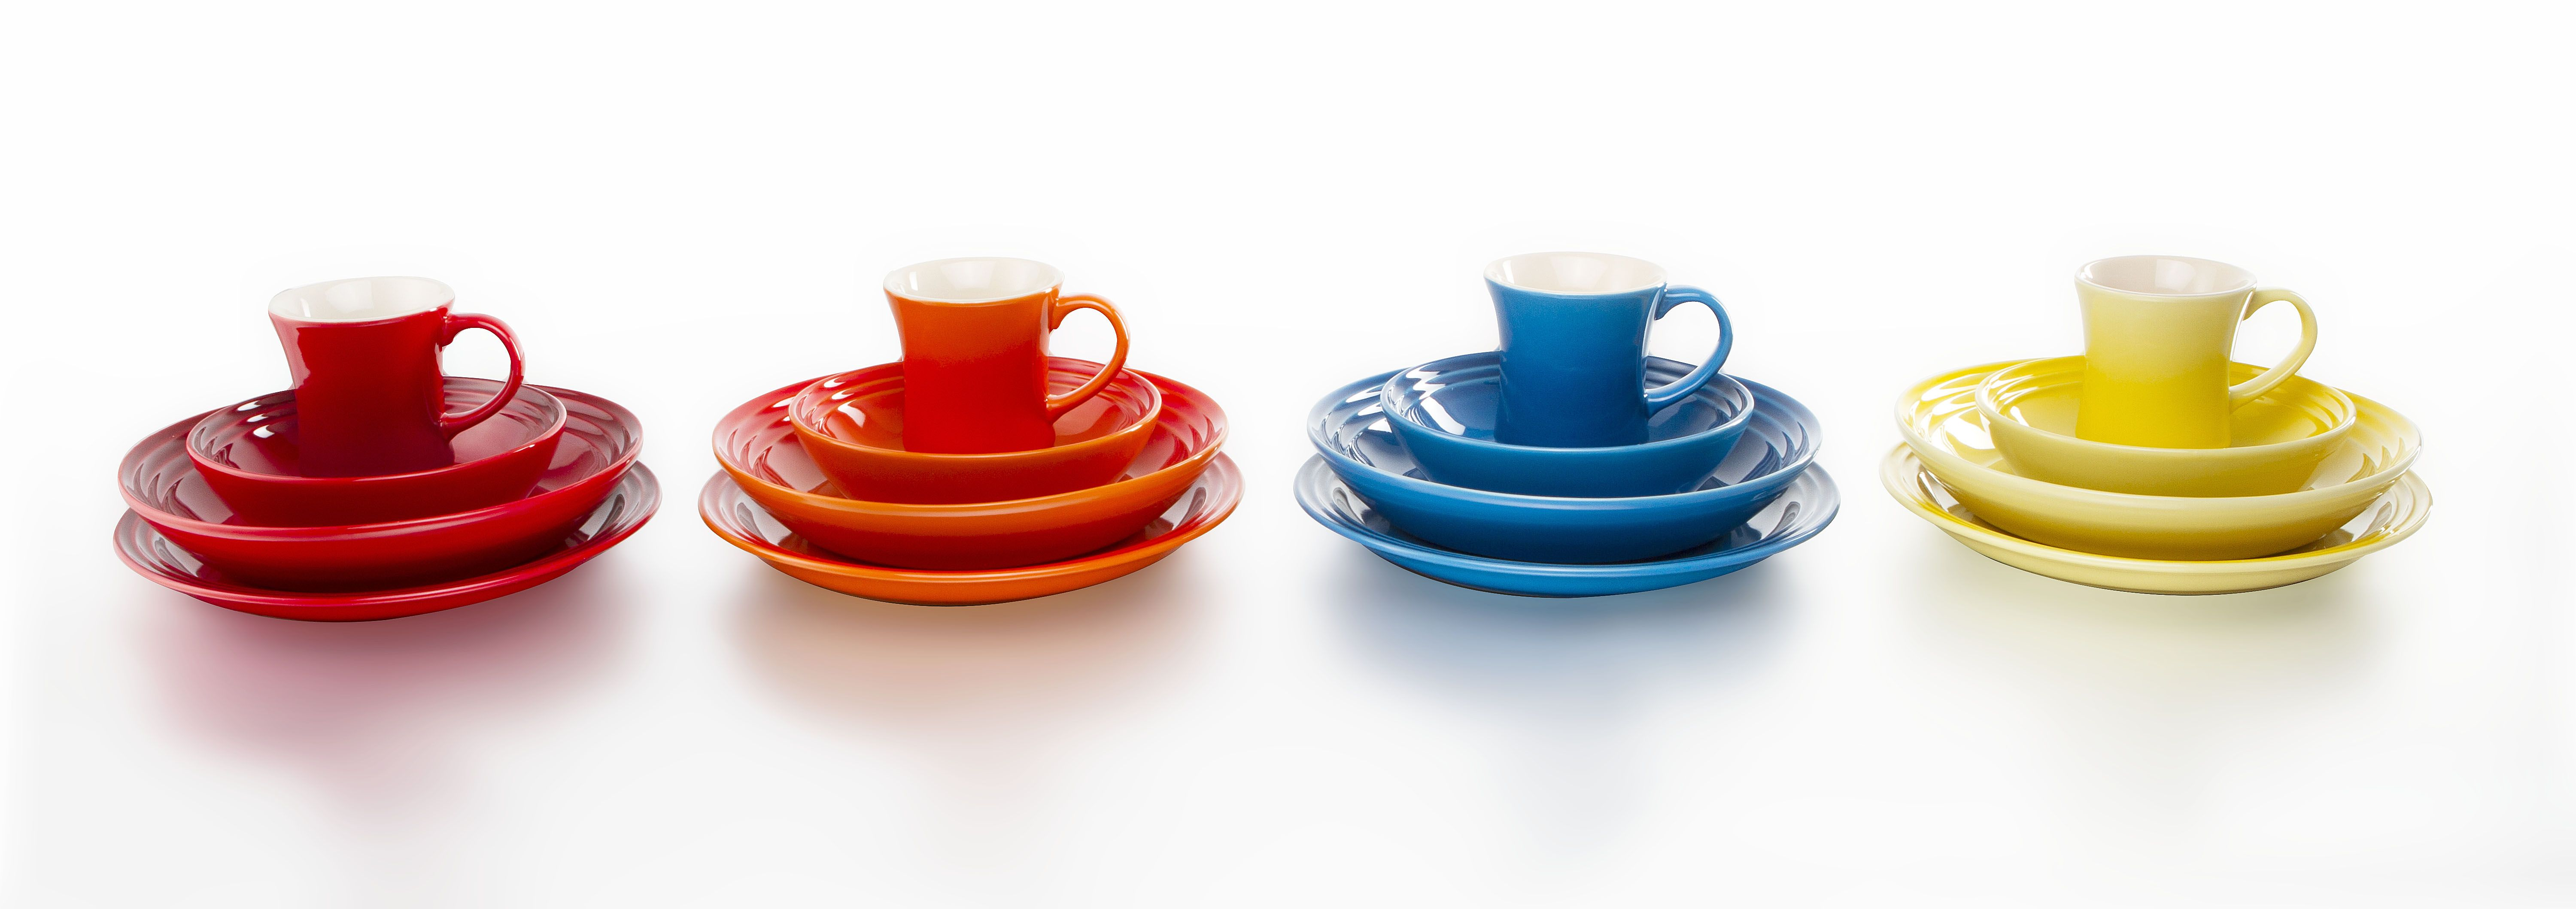 Le Creuset Dinnerware Sets Multi Colours  sc 1 st  Pinterest & Le Creuset Dinnerware Sets Multi Colours | Dinnerware | Pinterest ...